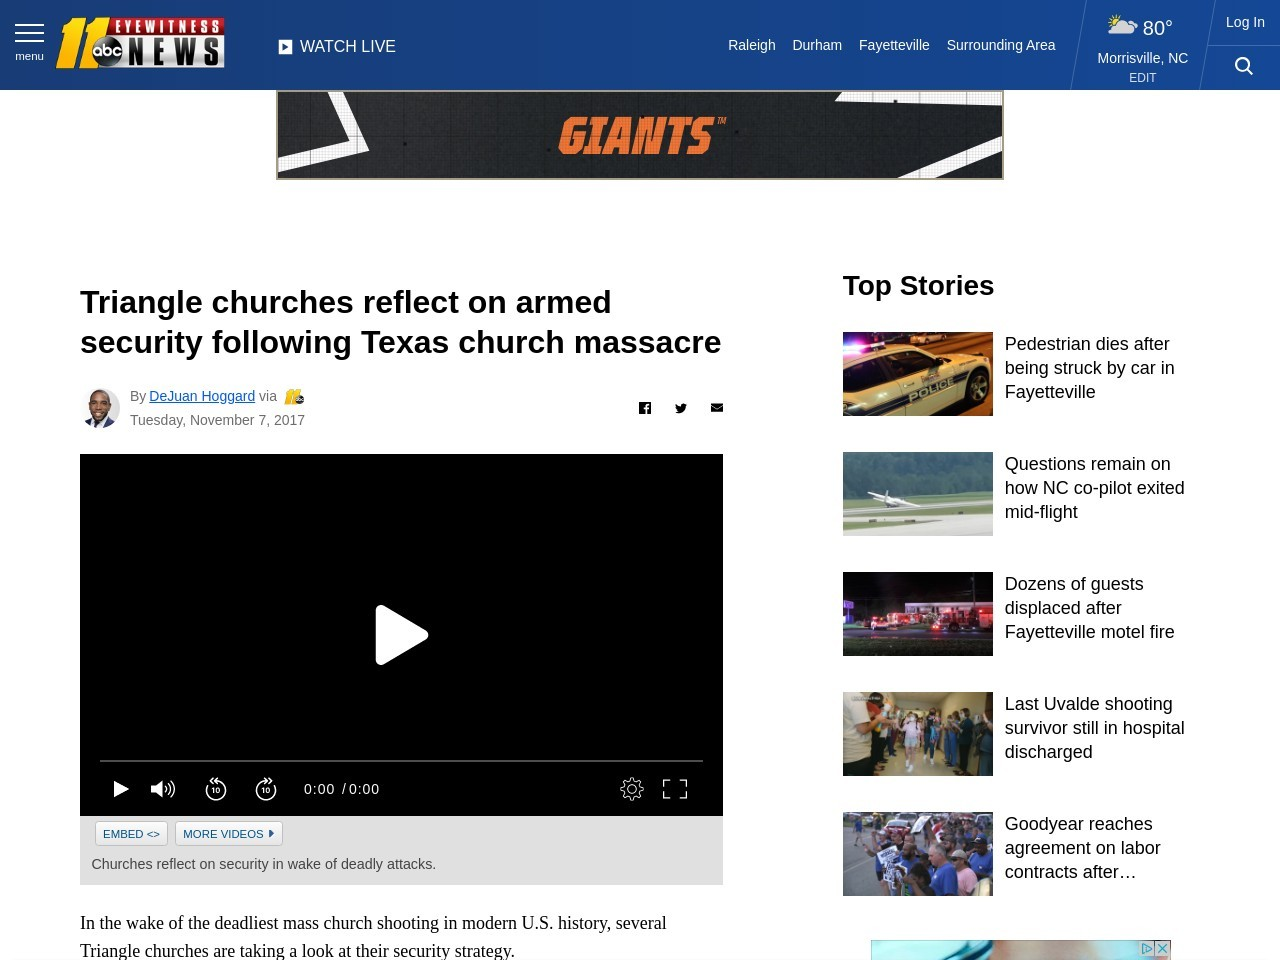 Triangle churches reflect on armed security following Texas church massacre